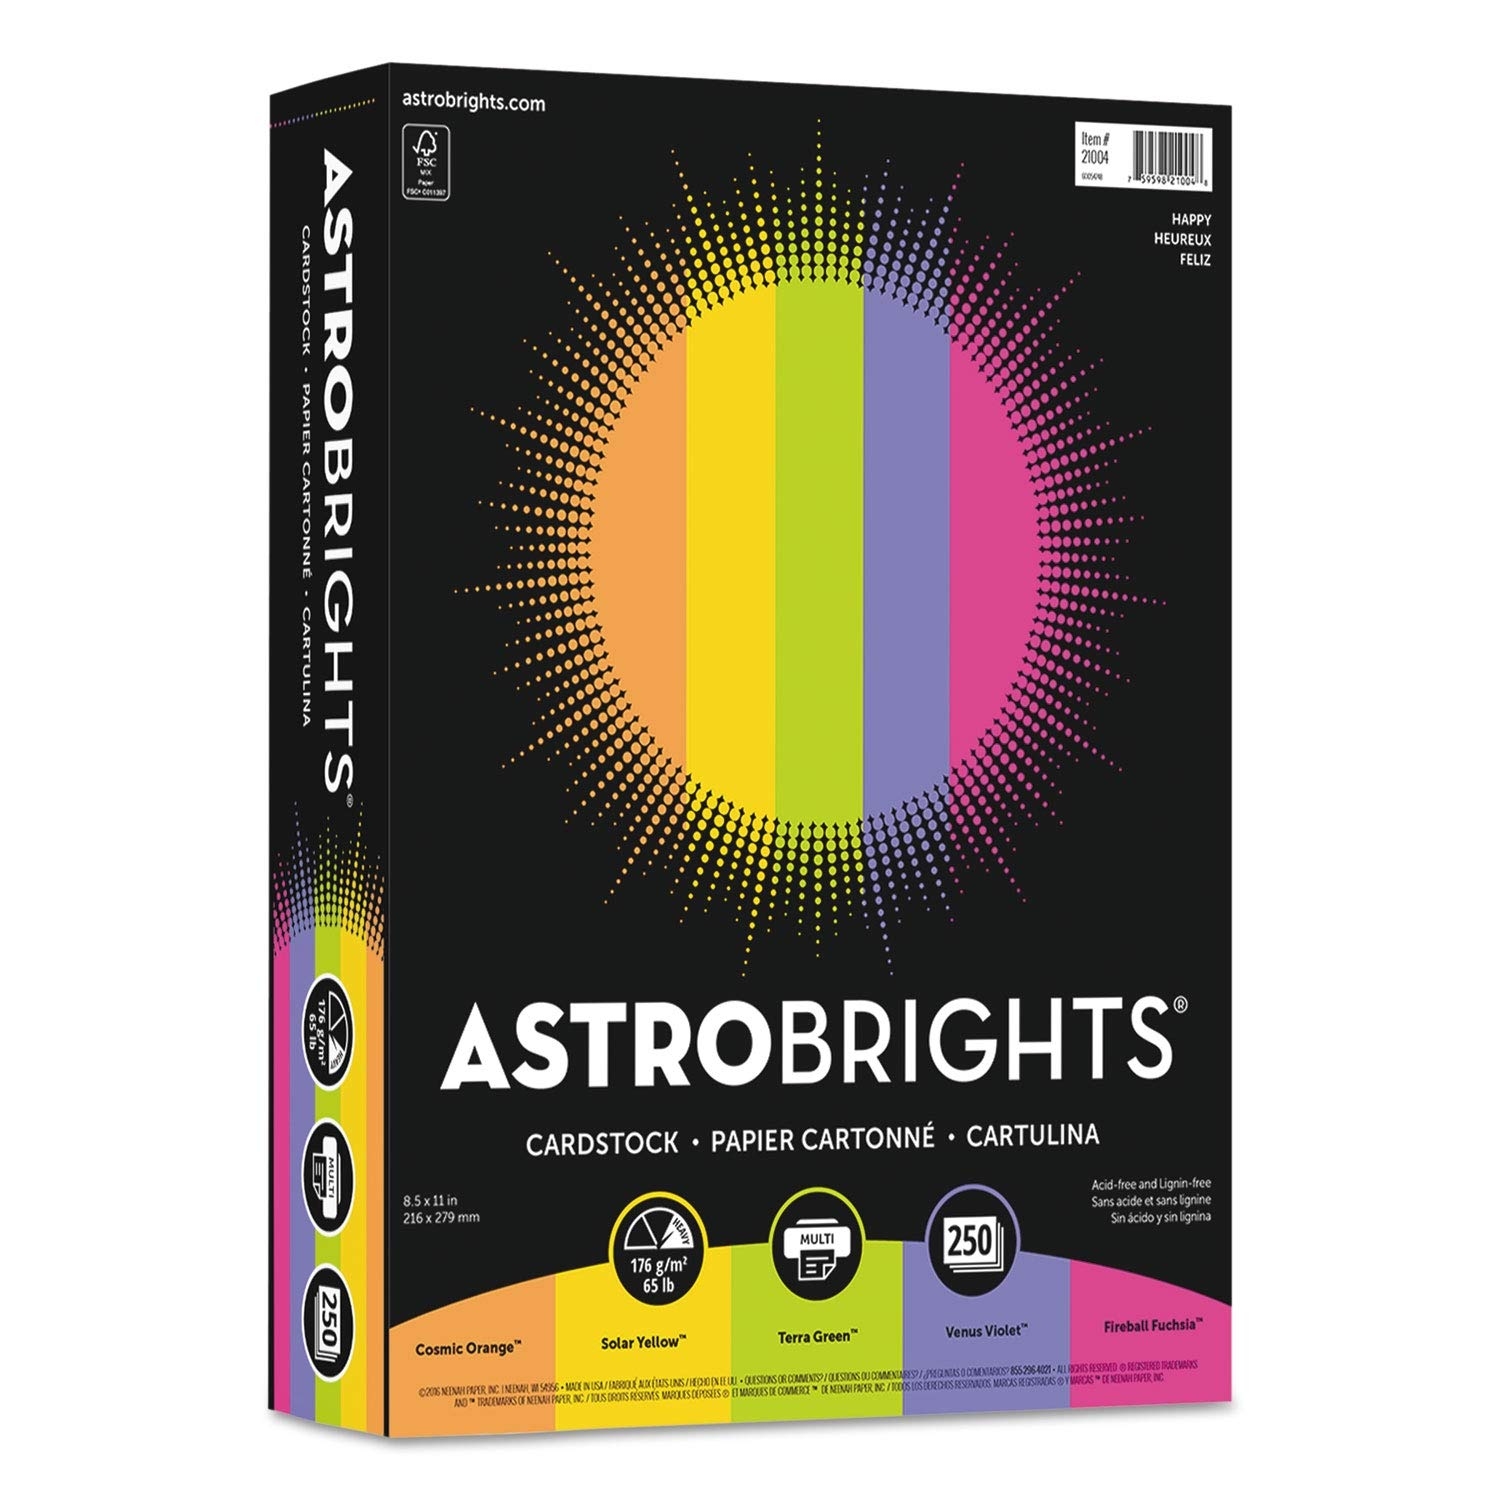 Astrobrights Color Cardstock, 65lb, 8 1/2 x 11, Assorted, 250 Sheets - 21004, (Pack of 2) by Astrobrights (Image #1)